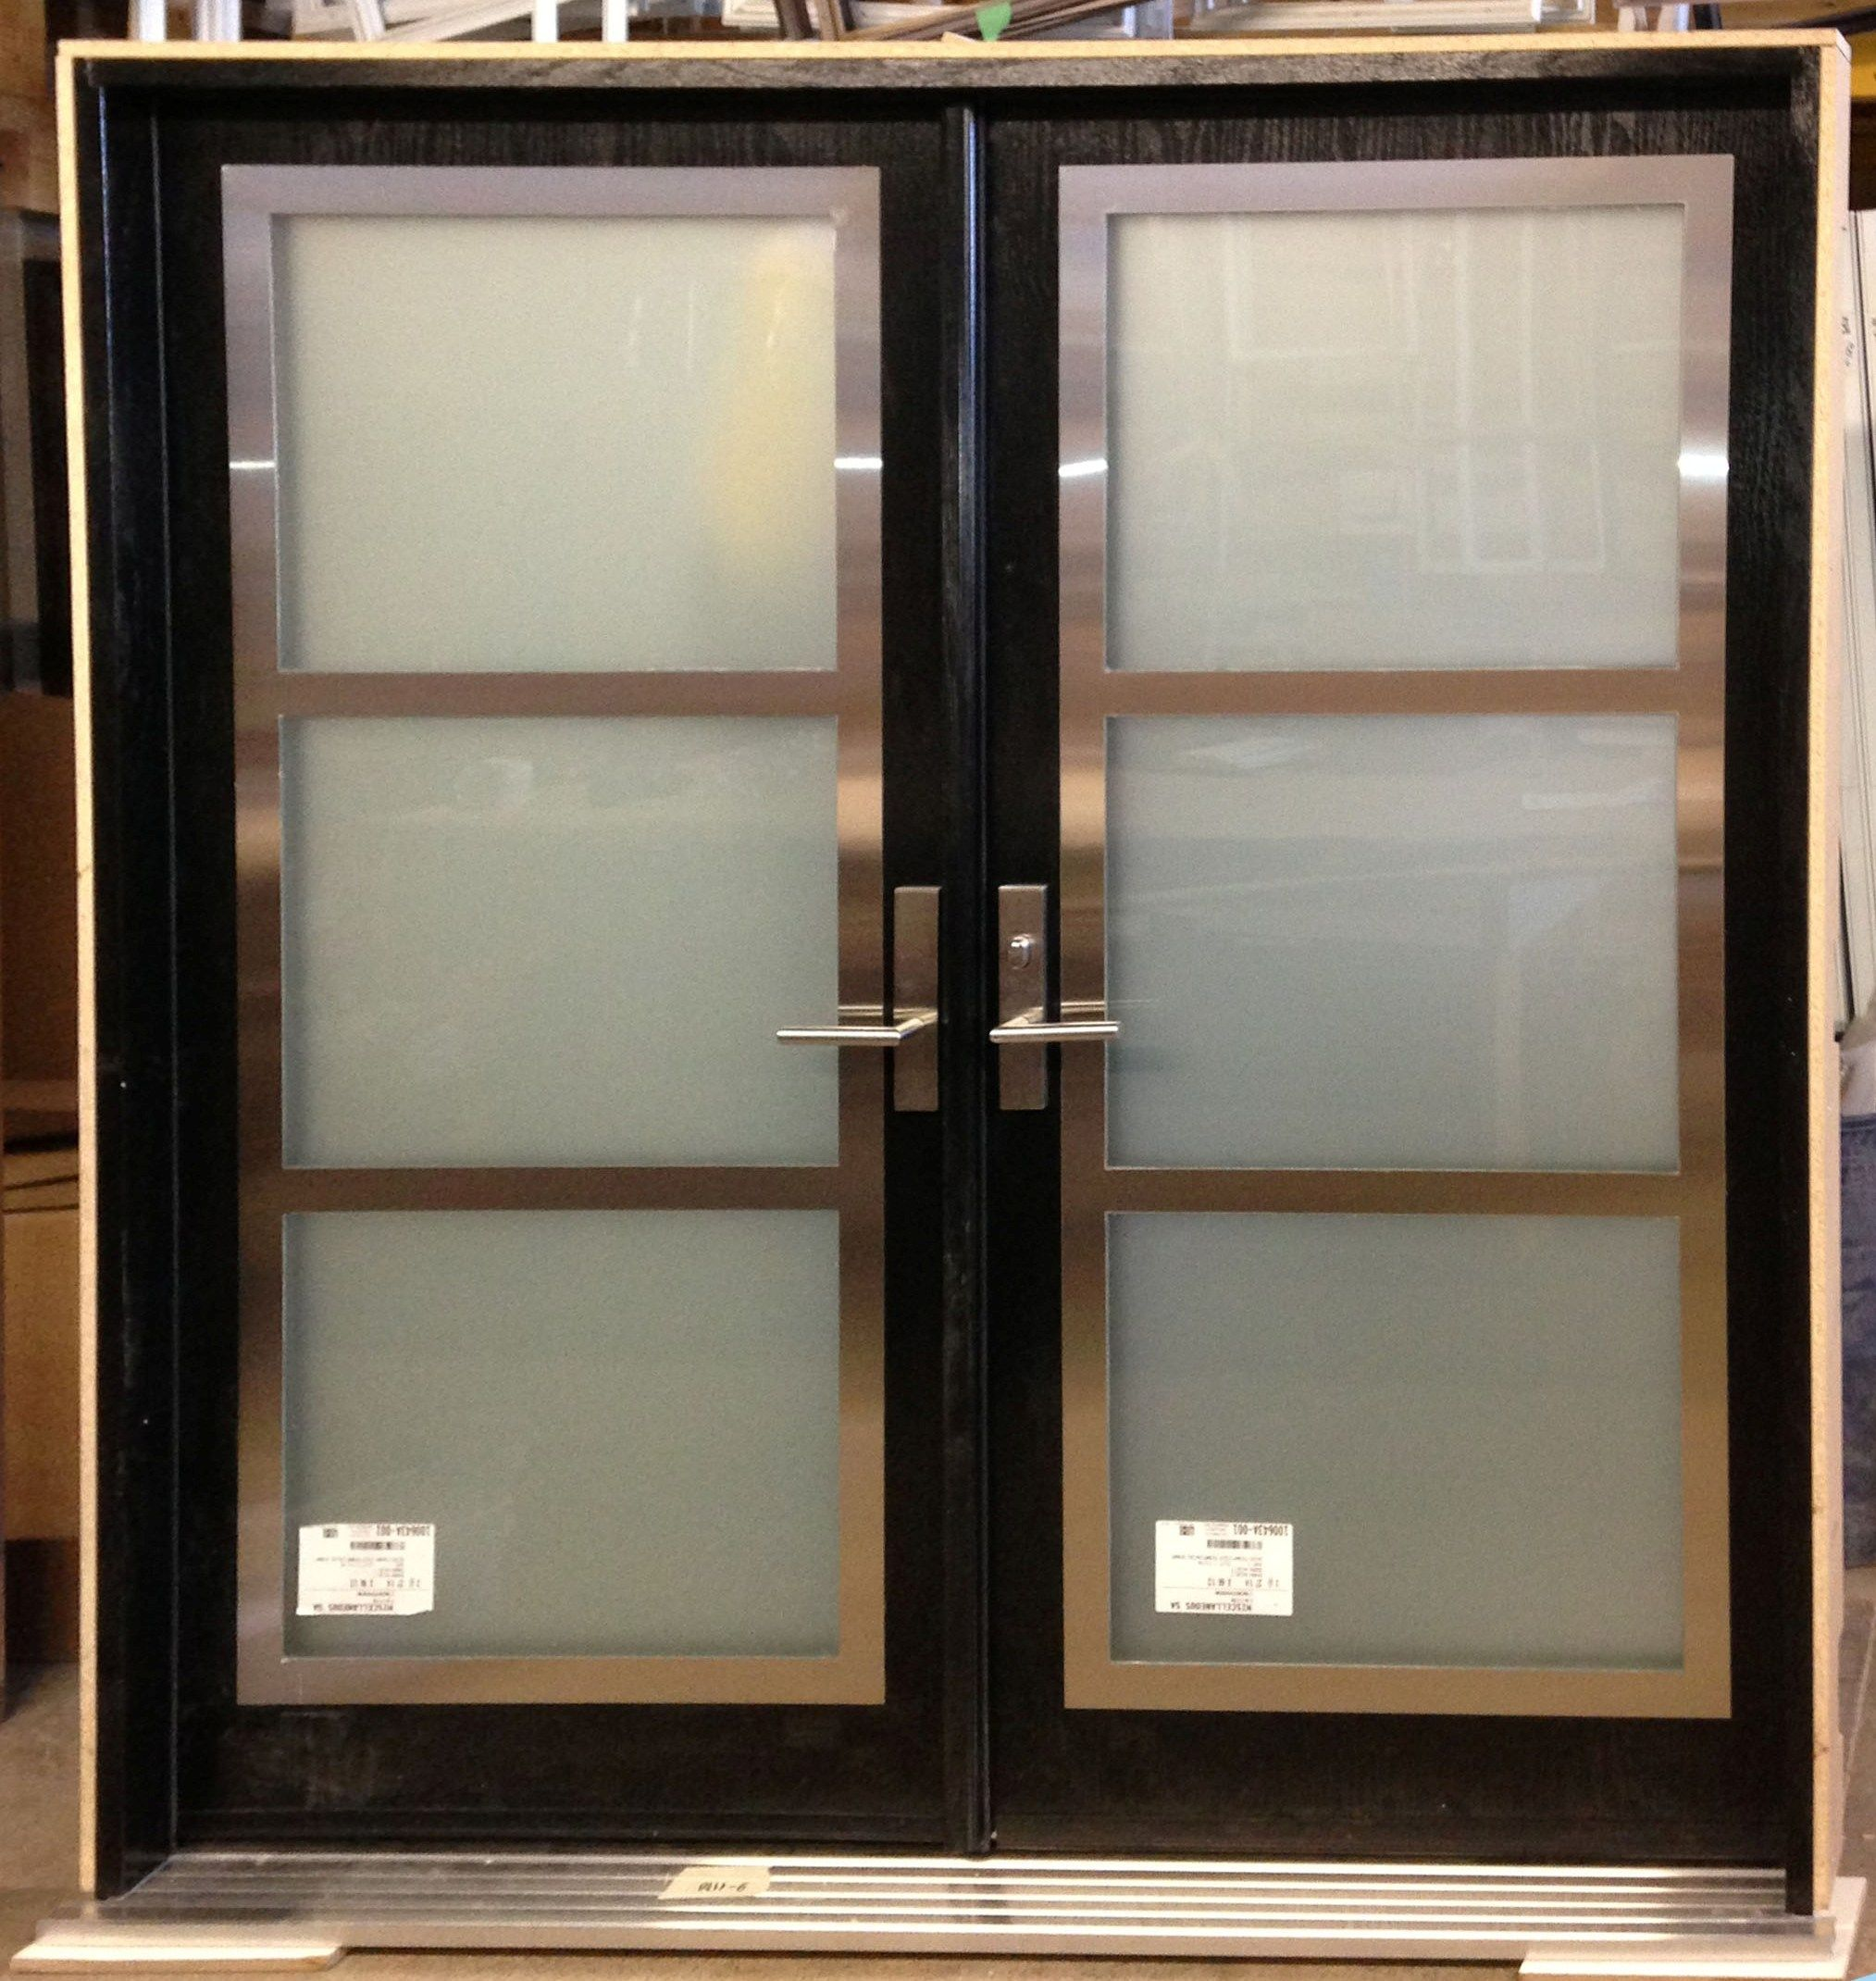 Double entry door with stainless steel frame on top of glass ...